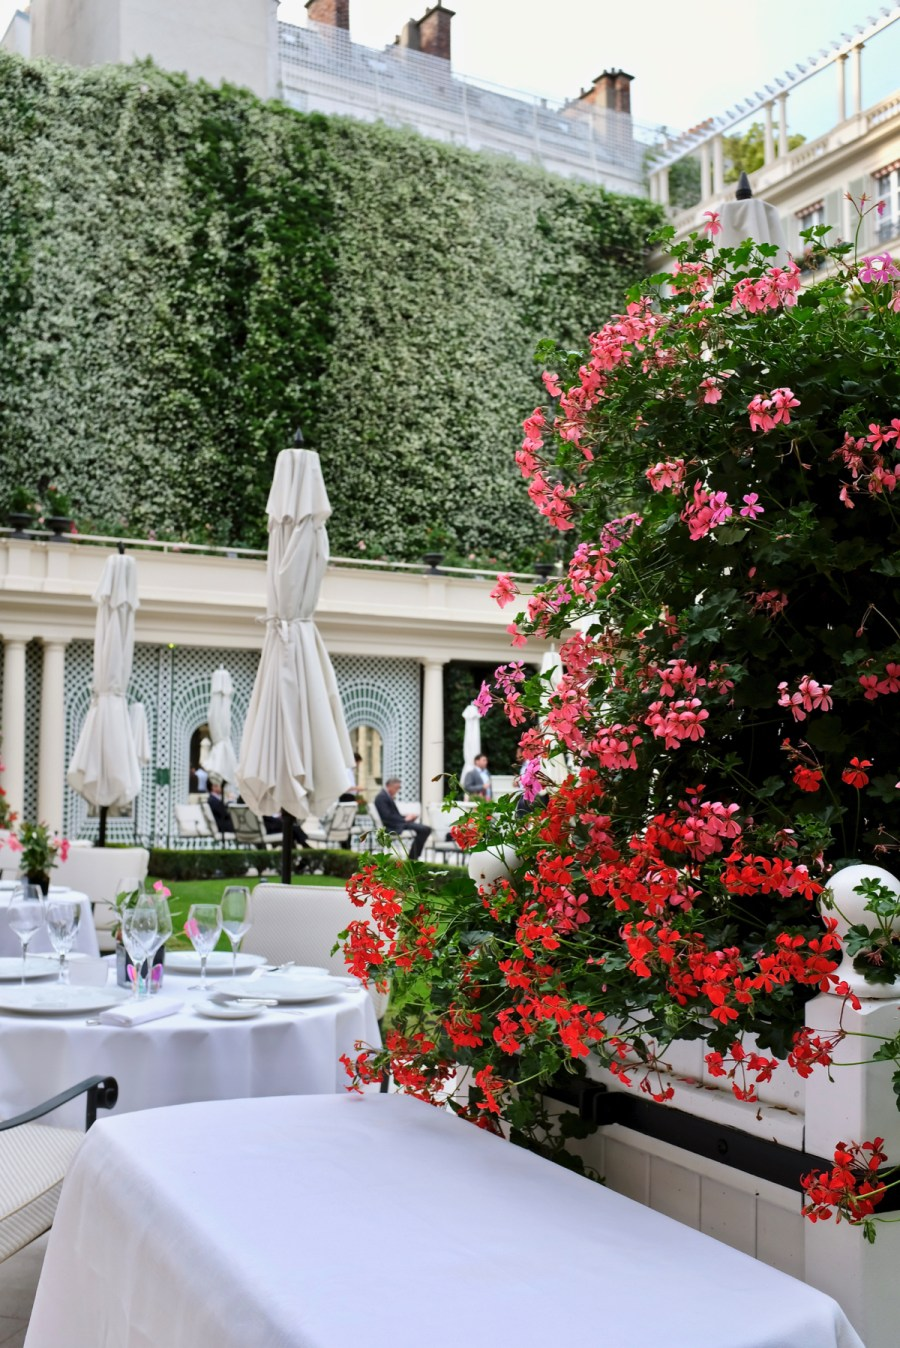 Epicure - Lovely Outdoor Dining in the Garden